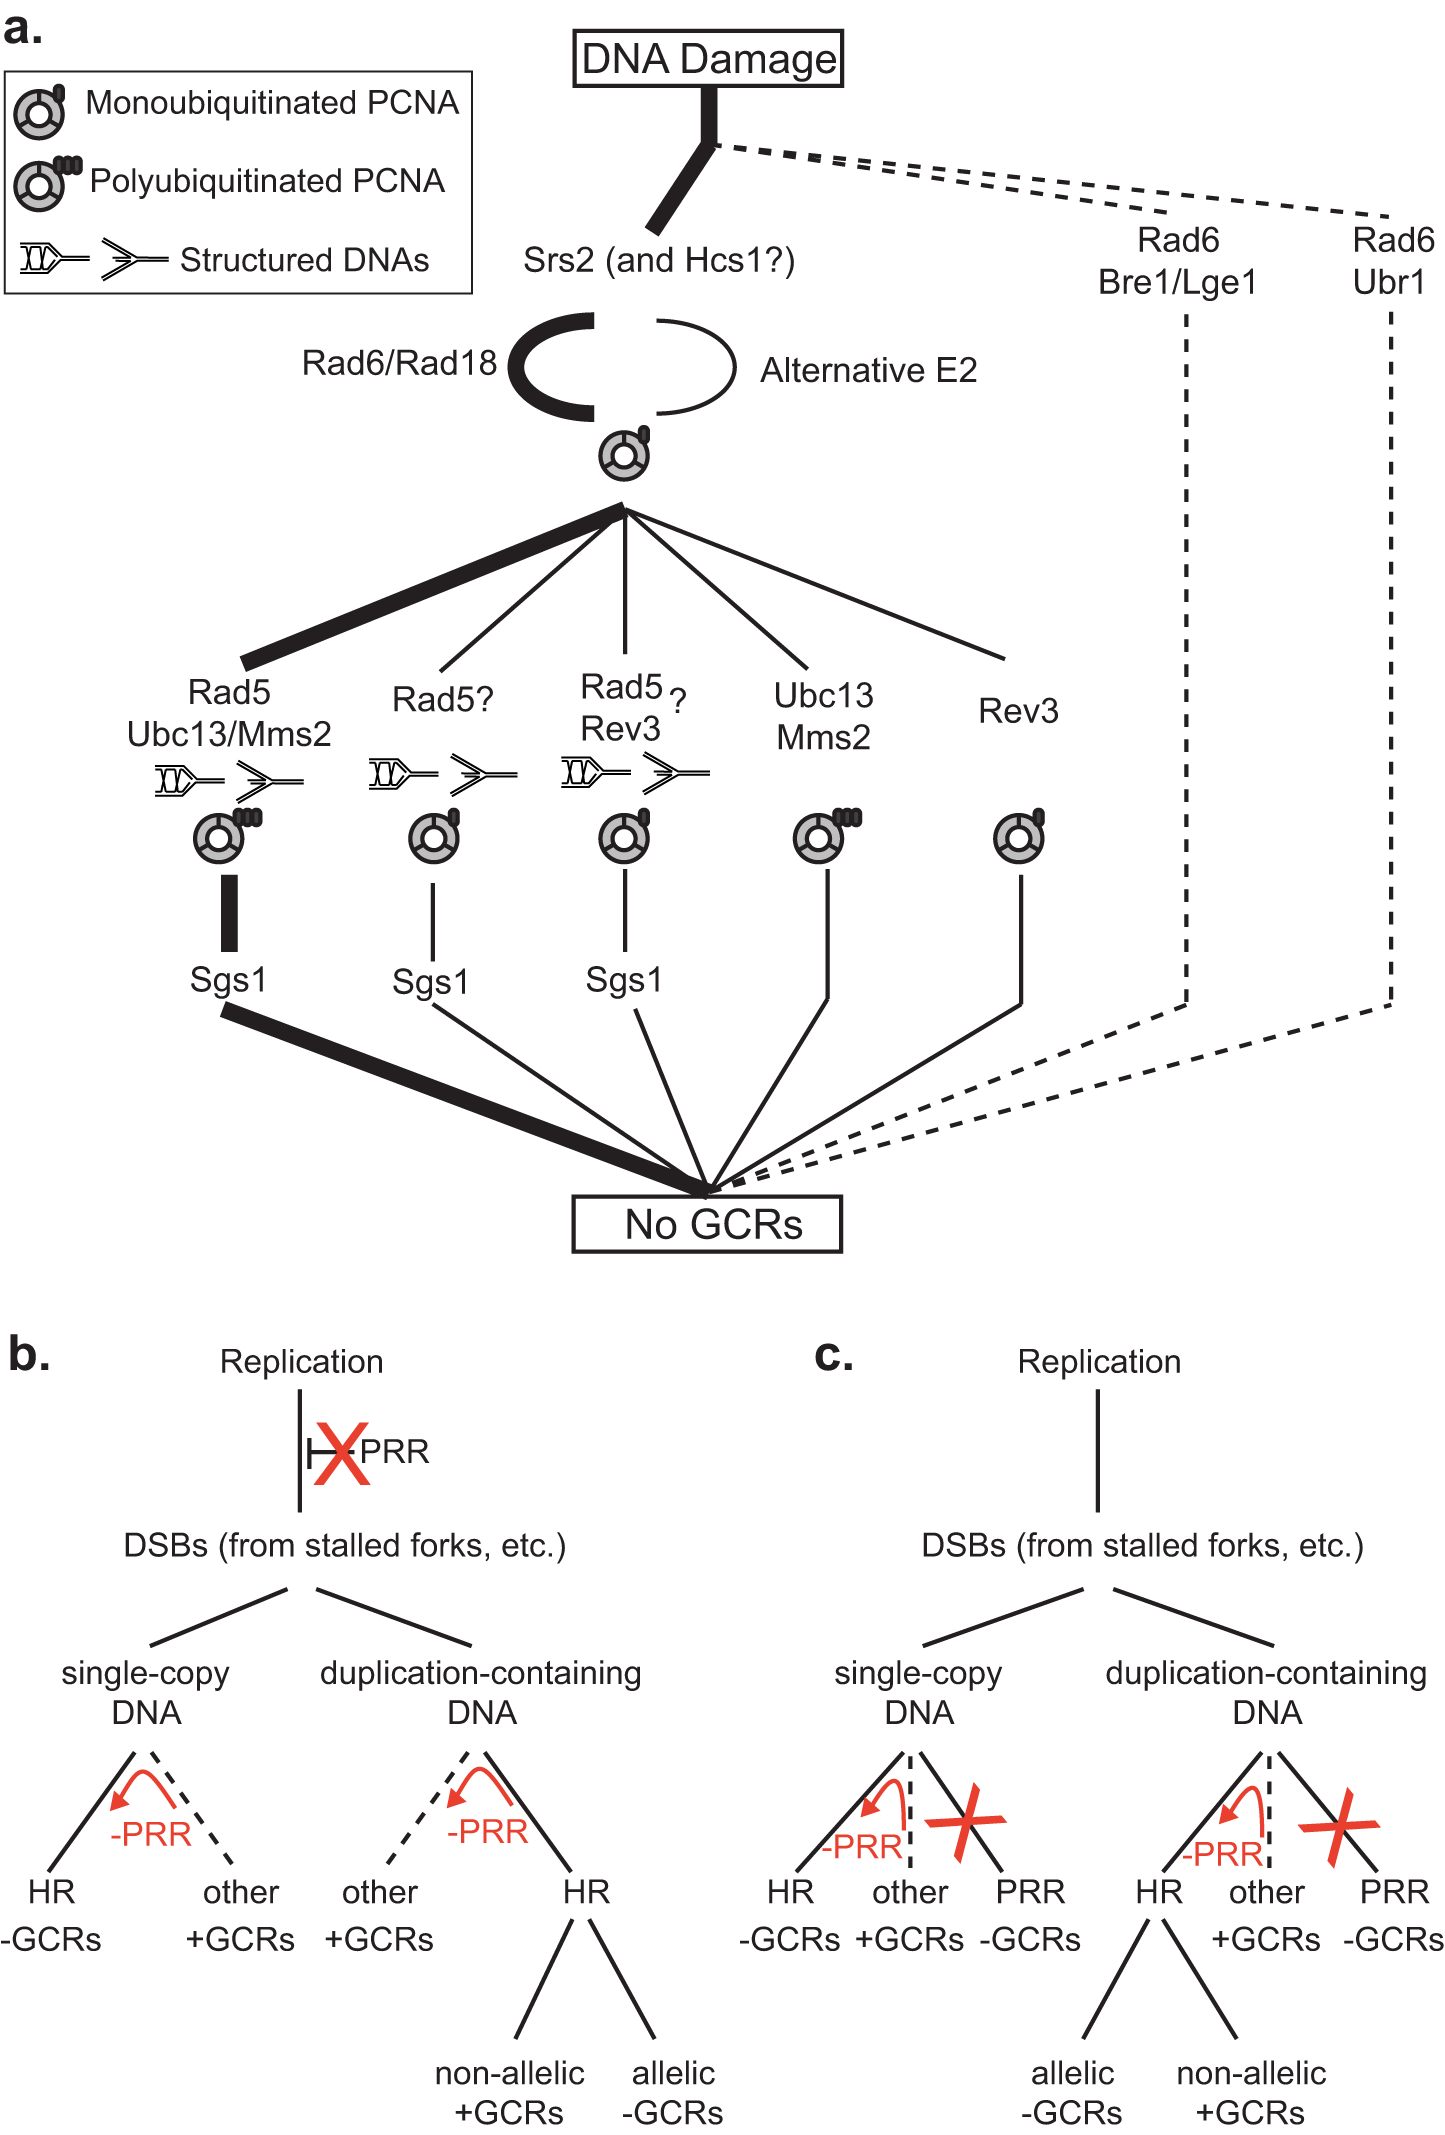 Models for the suppression of duplication-mediated GCRs by PRR.